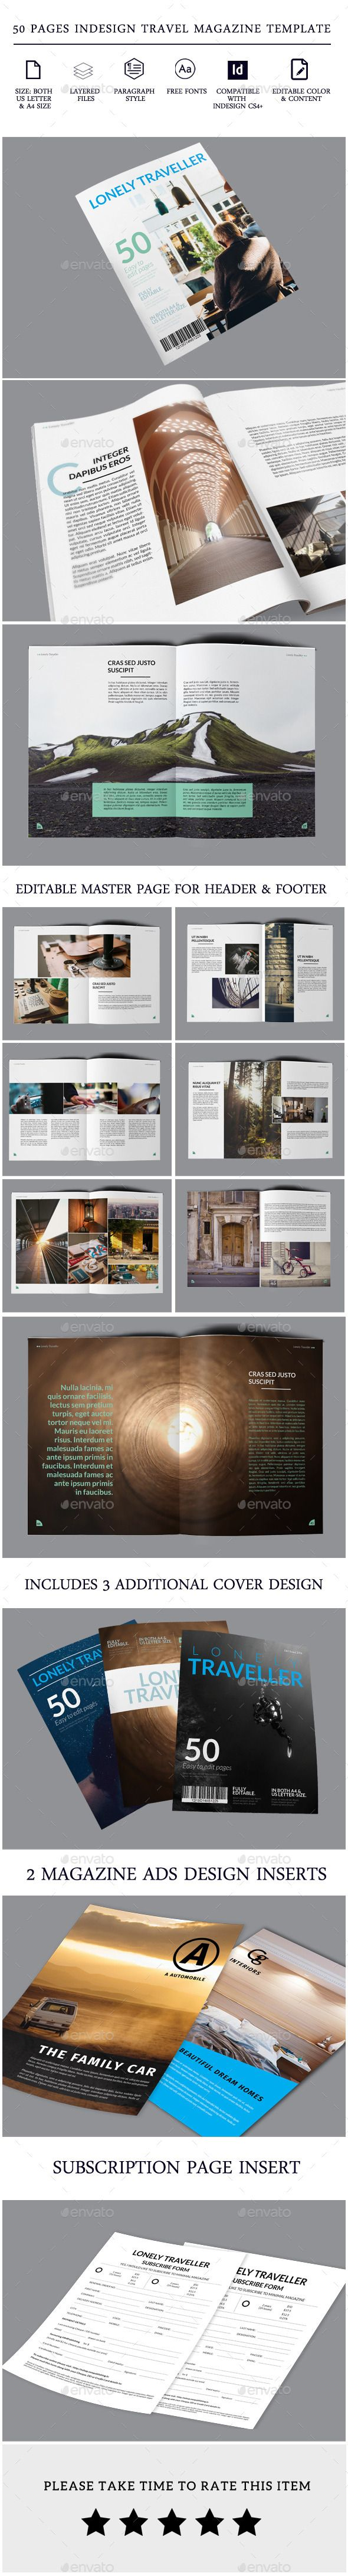 Travel Magazine -50 pages Indesign Template | Editorial, Diseño ...